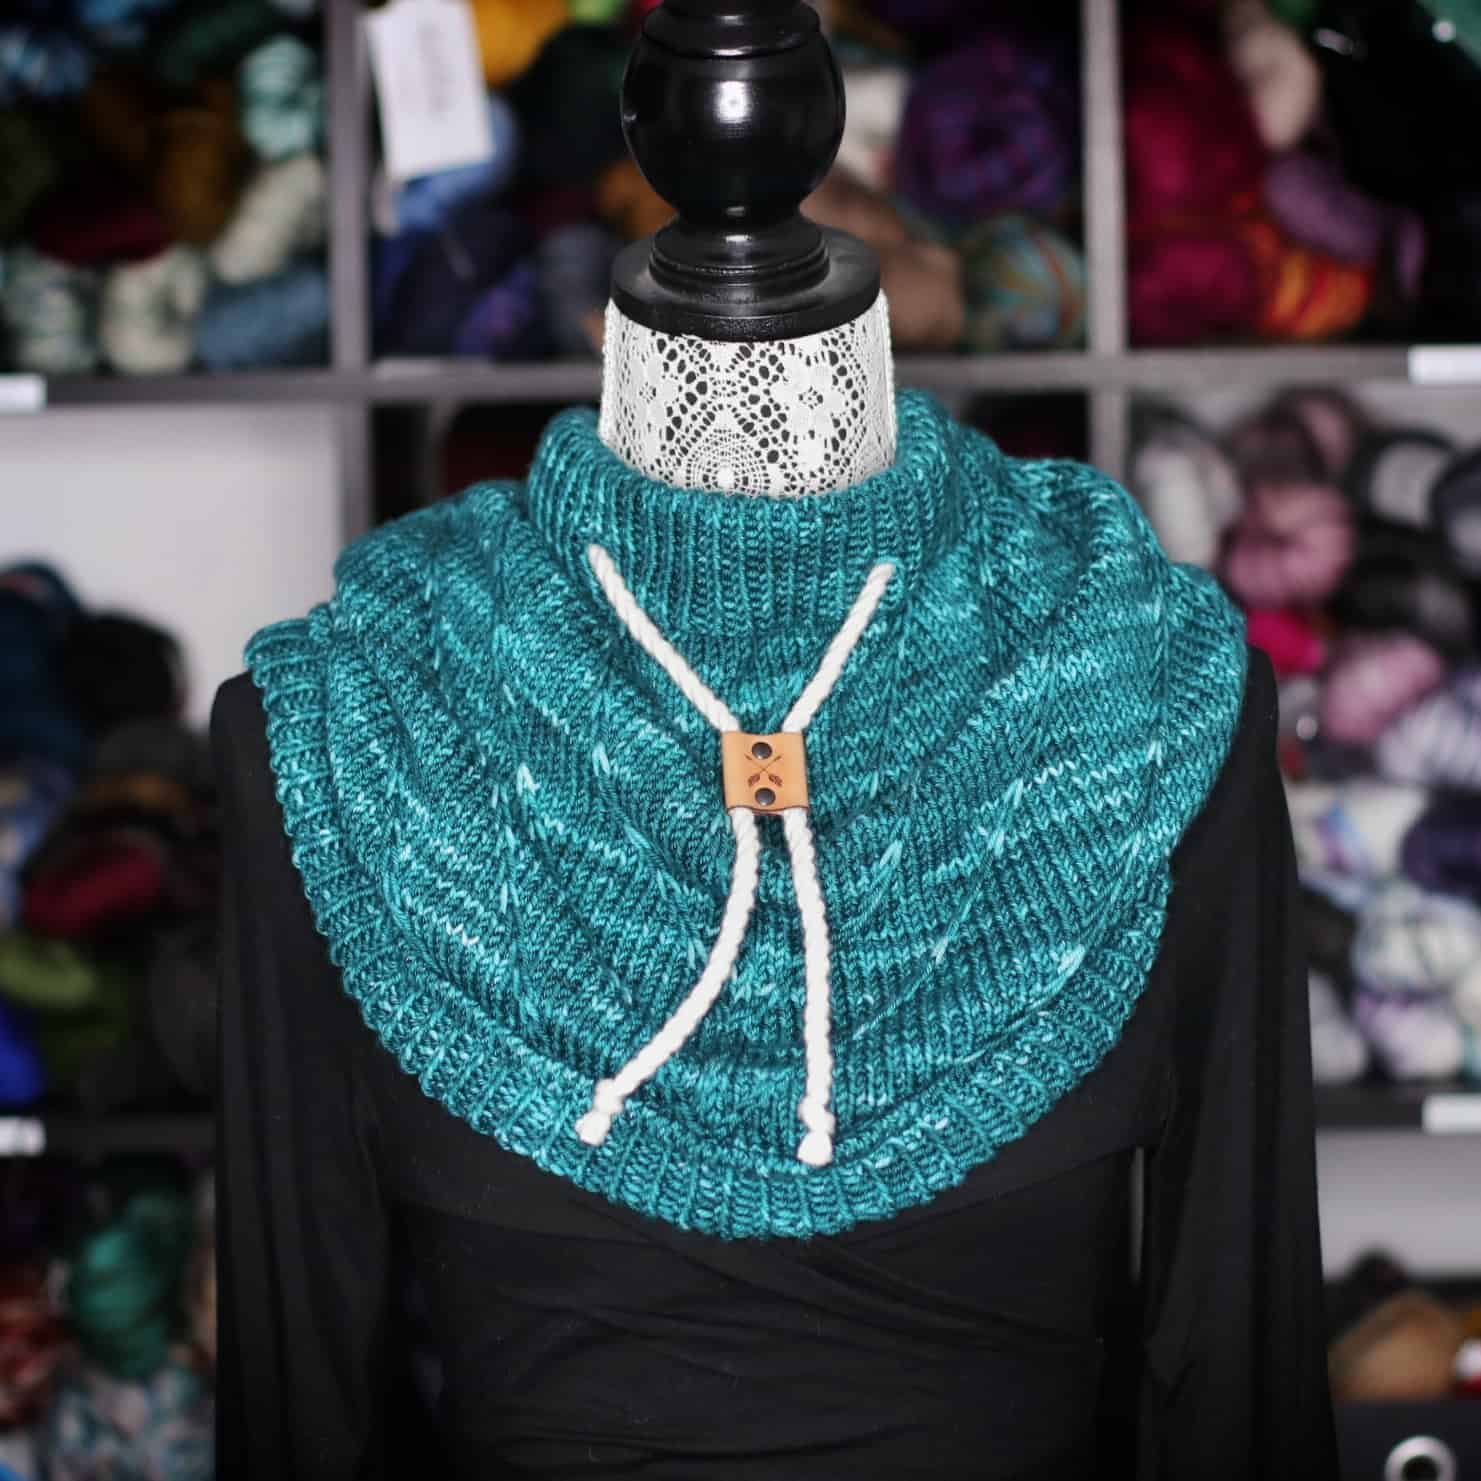 A teal cowl with a white cord on a dress form.